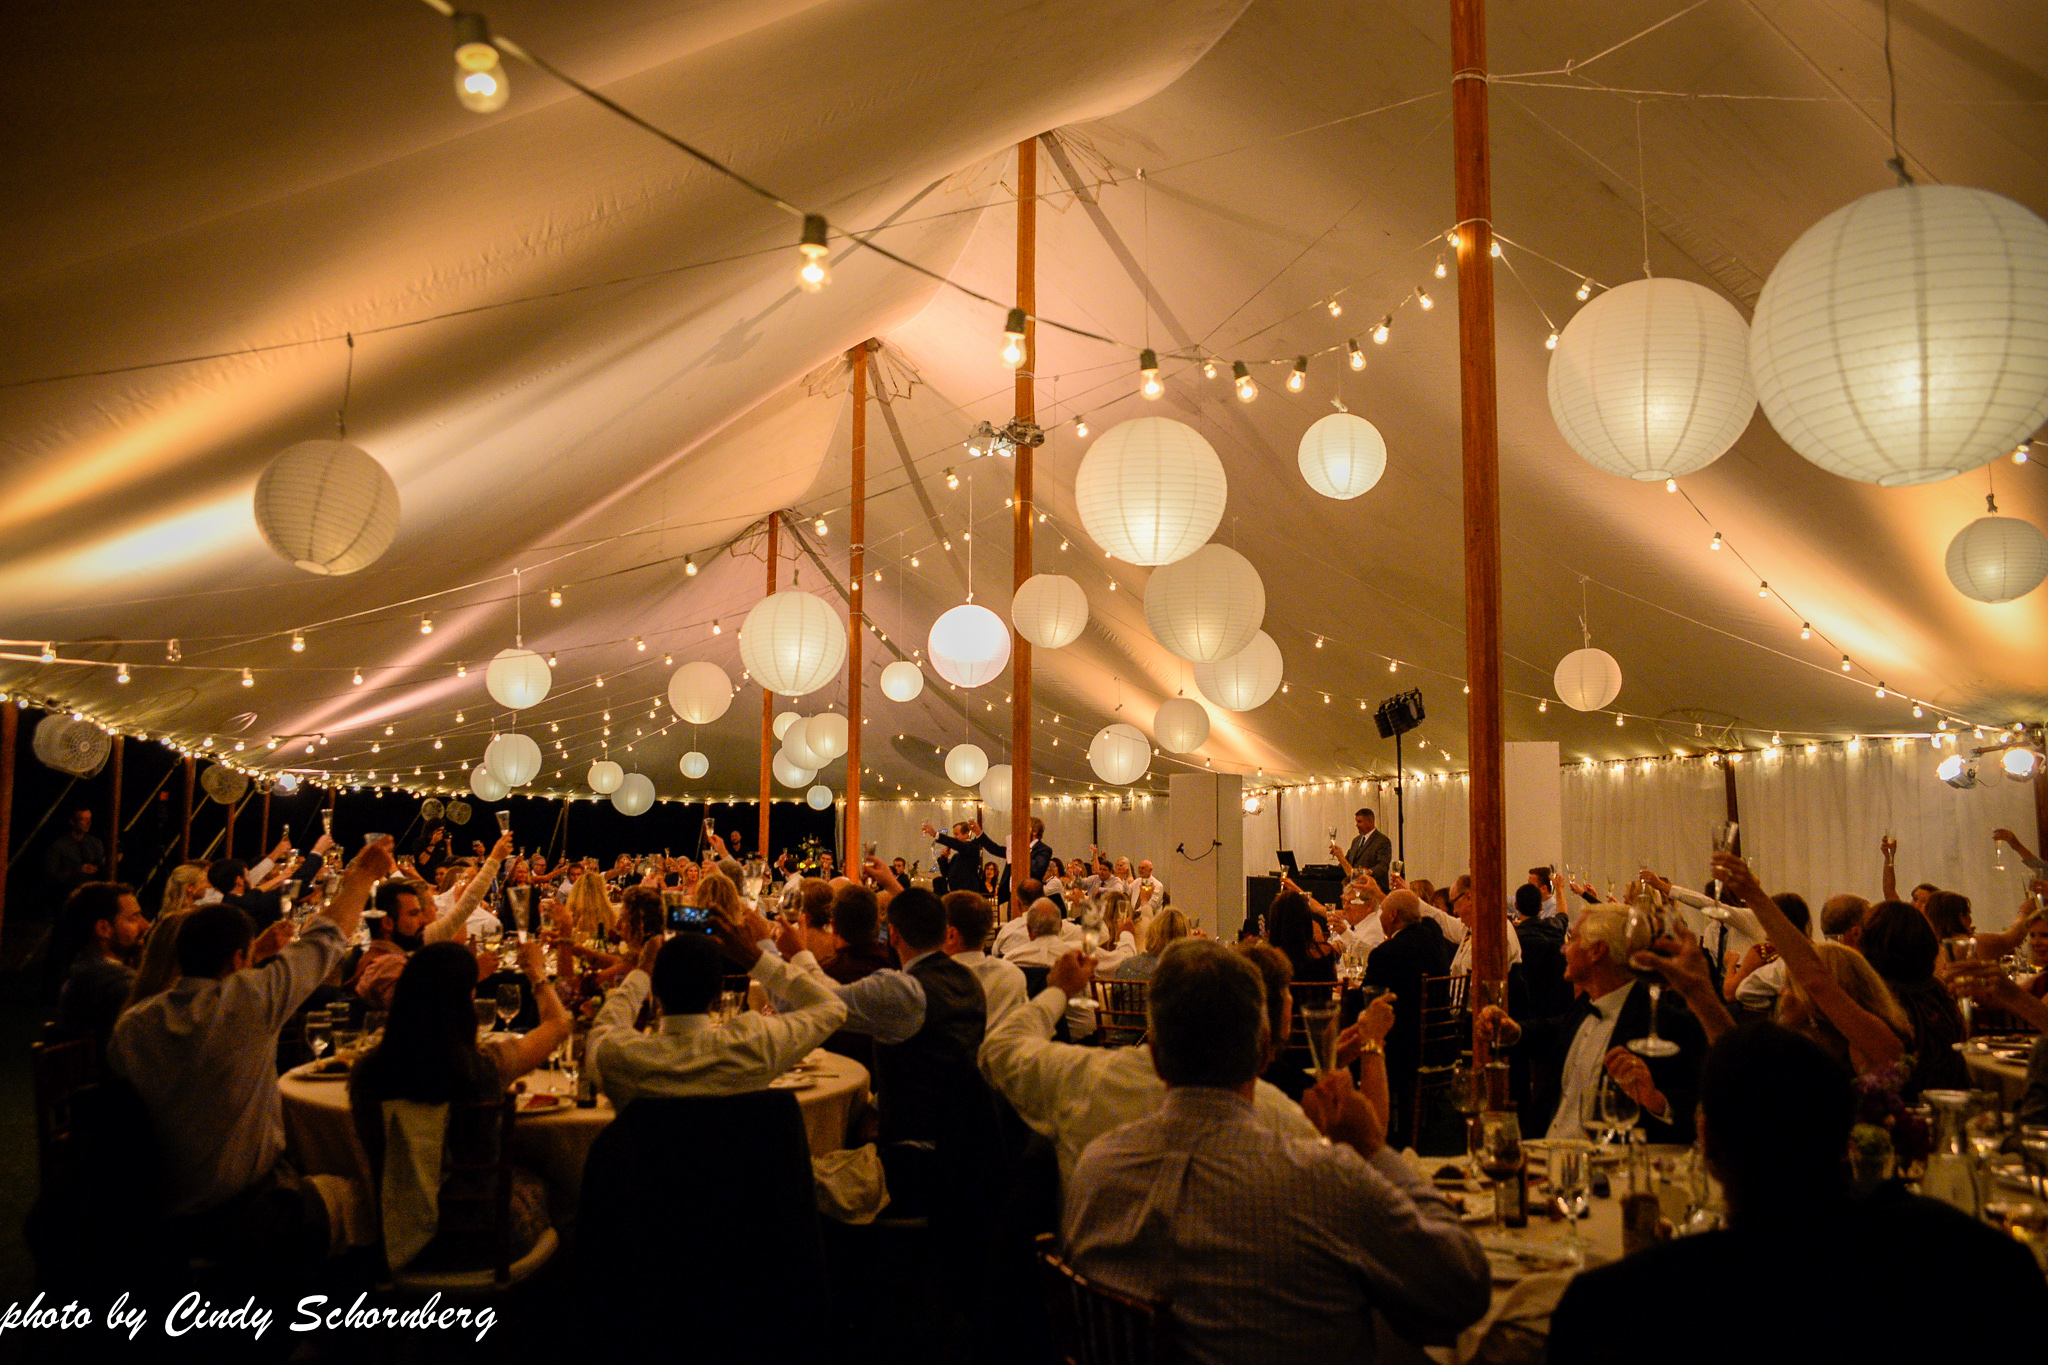 vineyard_weddings_Charlottesville_Virginia_019.jpg